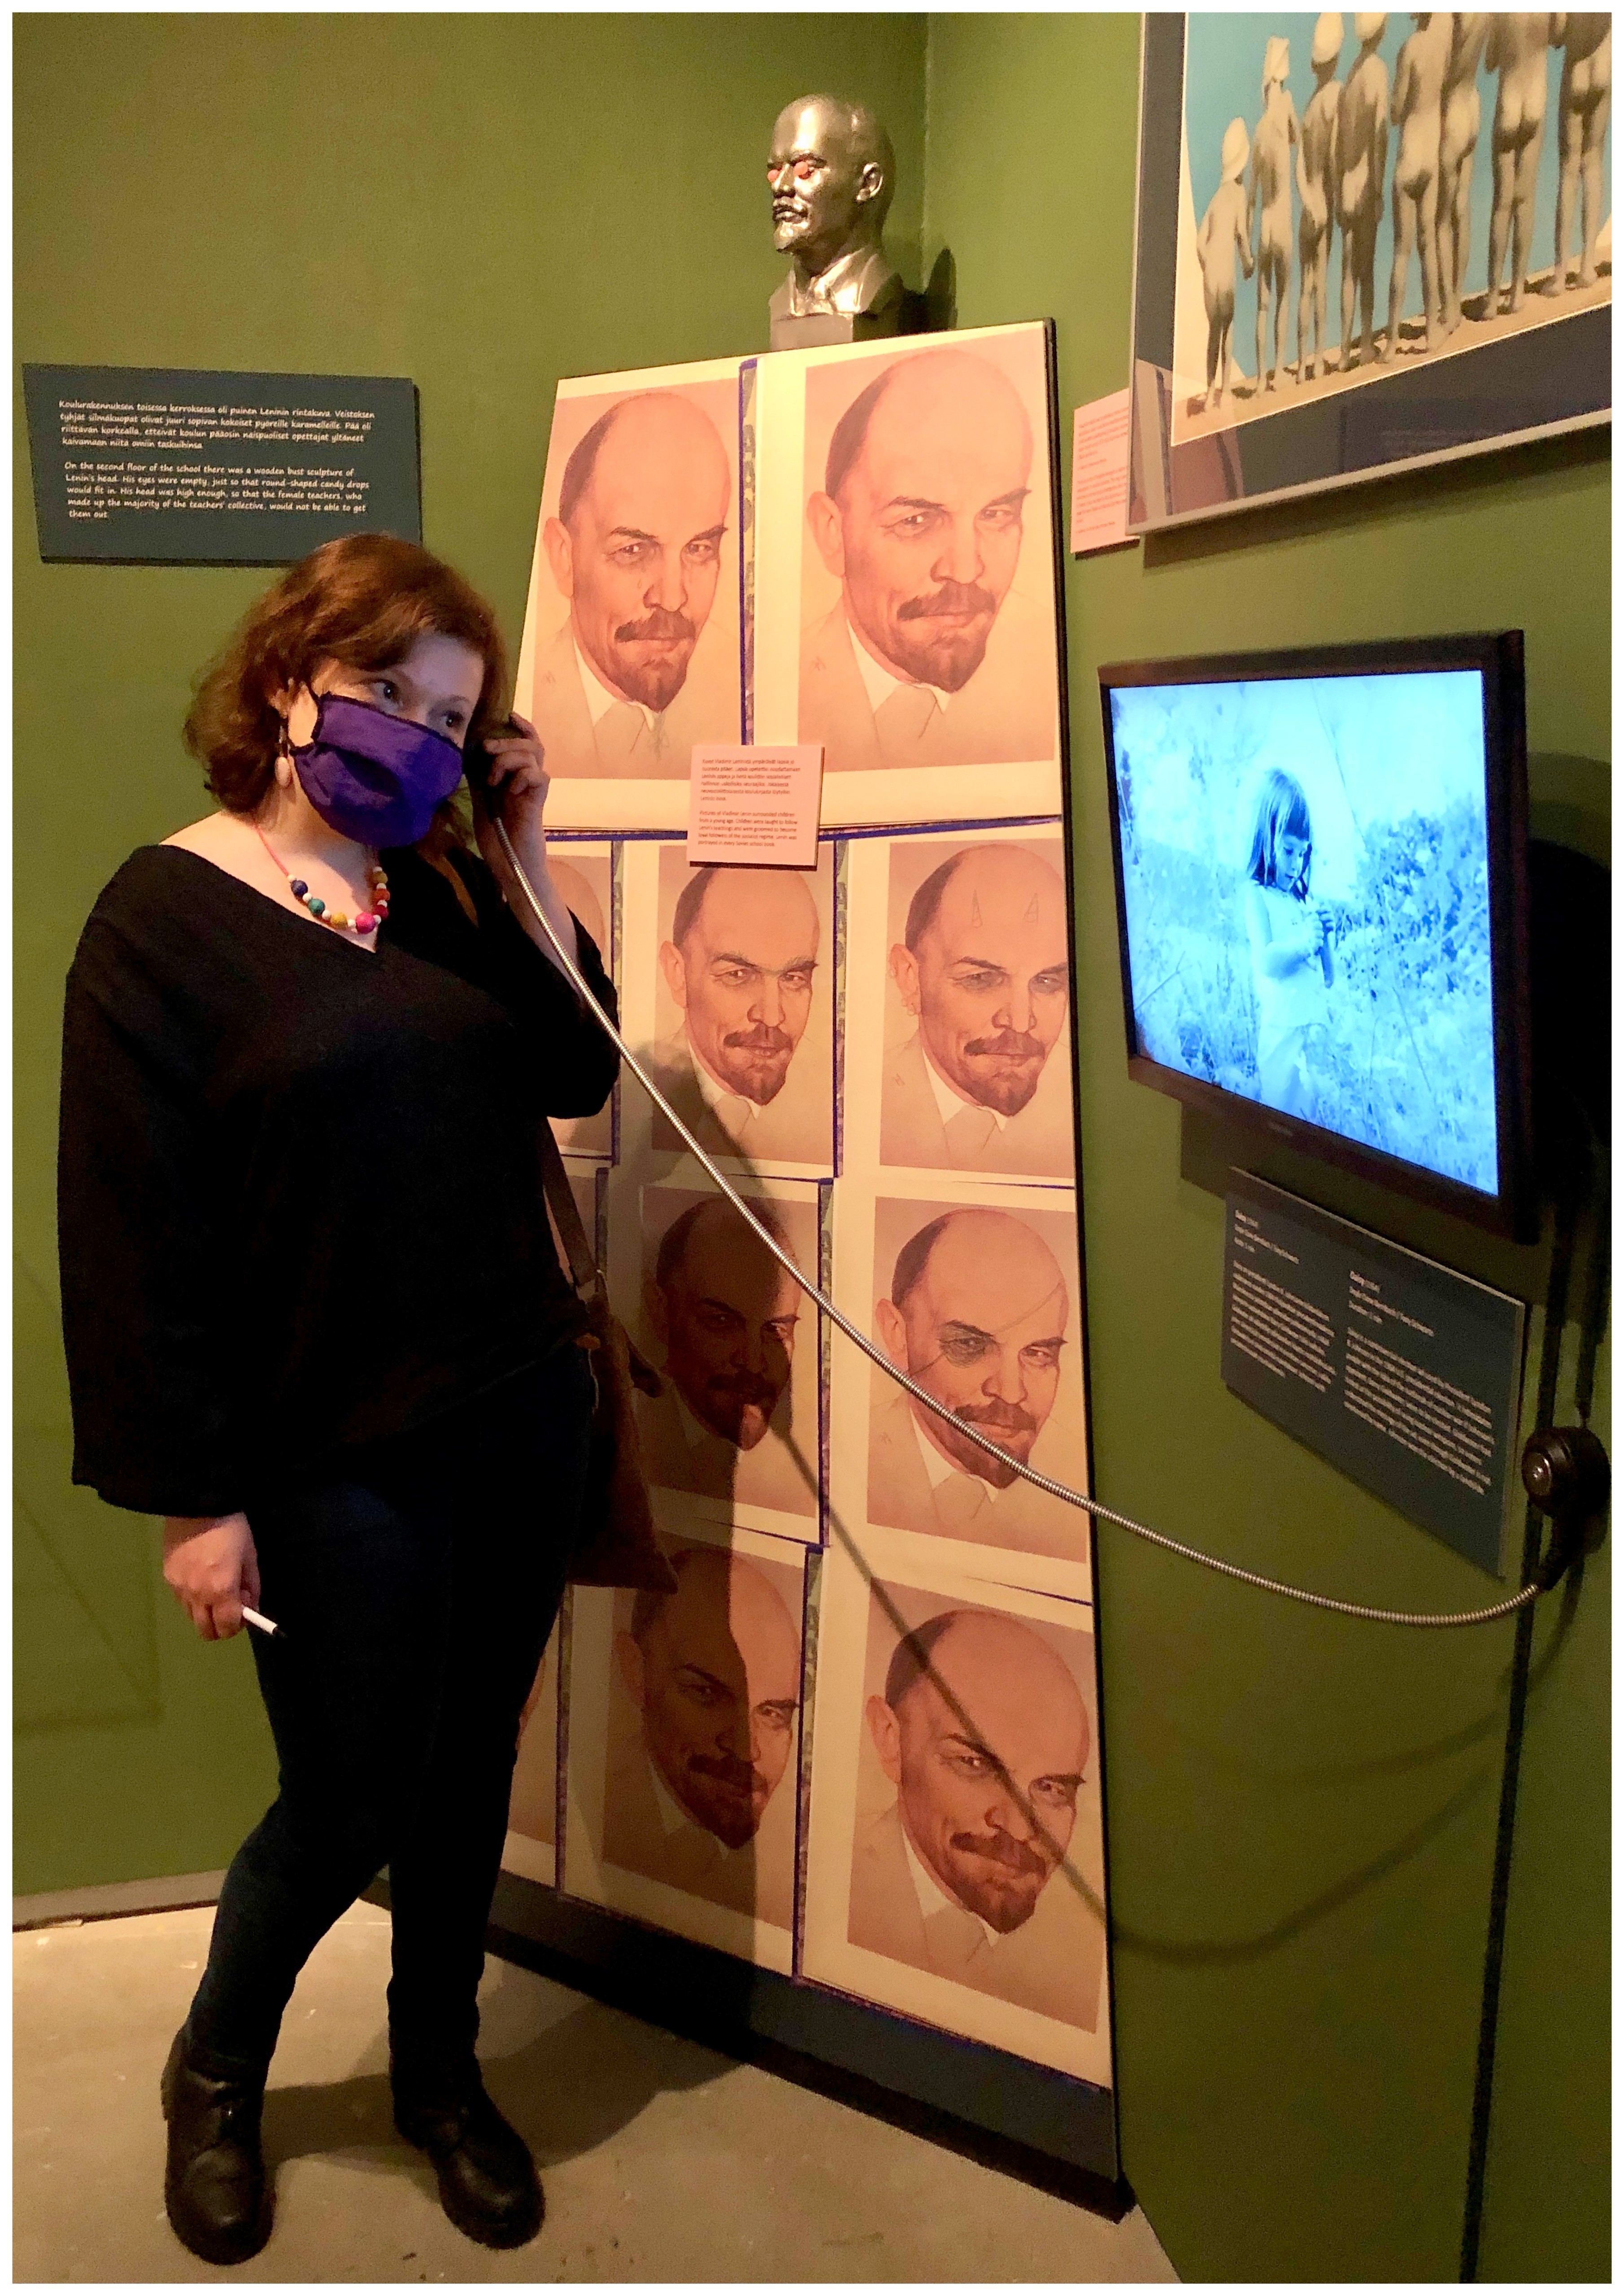 A person trying out an old telephone in the exhibition.